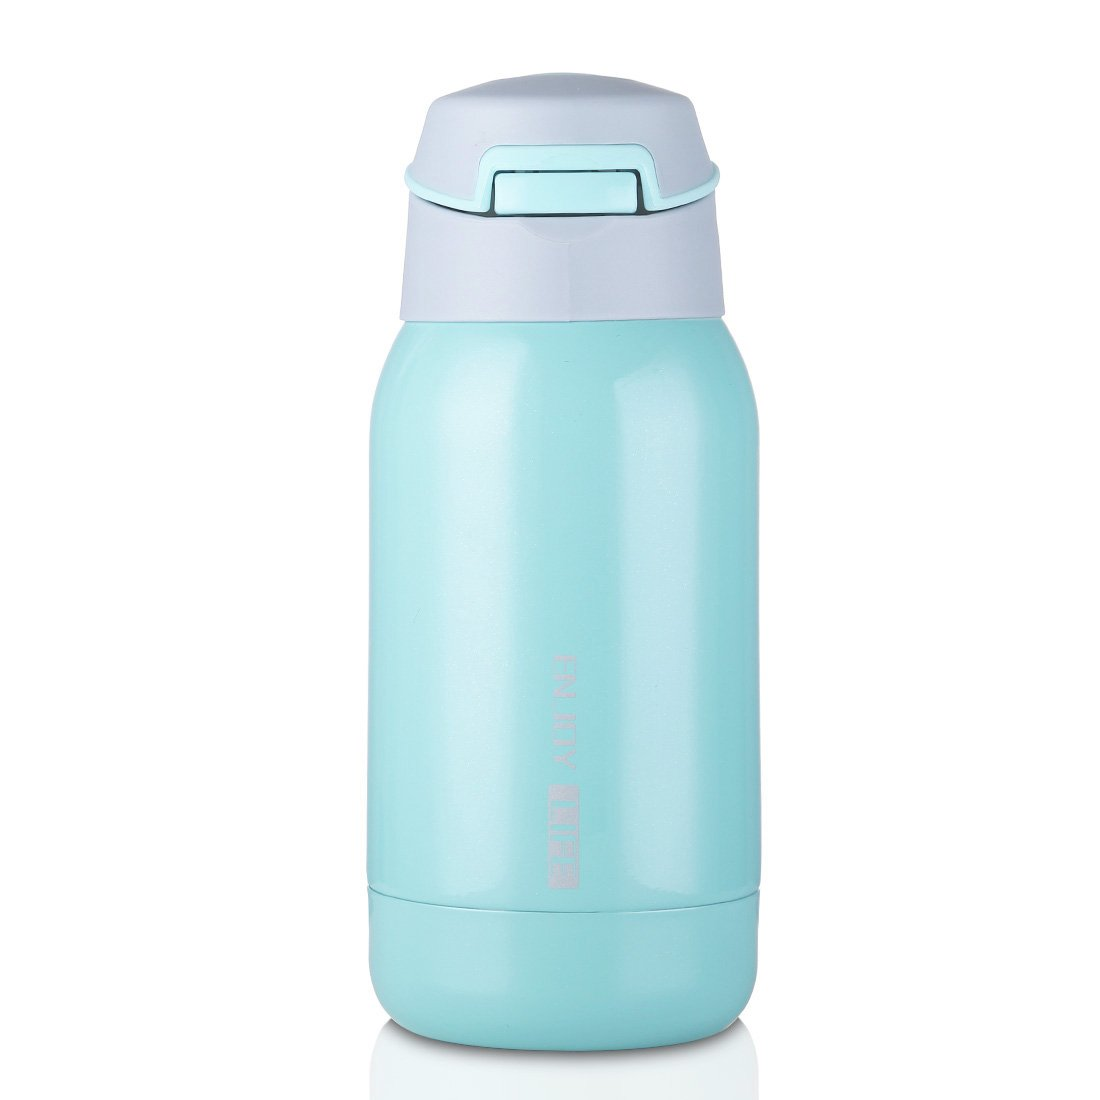 260ML Vacuum Insulated Flask,Travel Coffee Mug,Stainless Steel Sport Wat10oz Mini Vacuum Insulated Flask, Stainless Steel Travel Coffee Mug, Child Kids Adult Drinking Water Bottle Thermos Gift (Cyan)